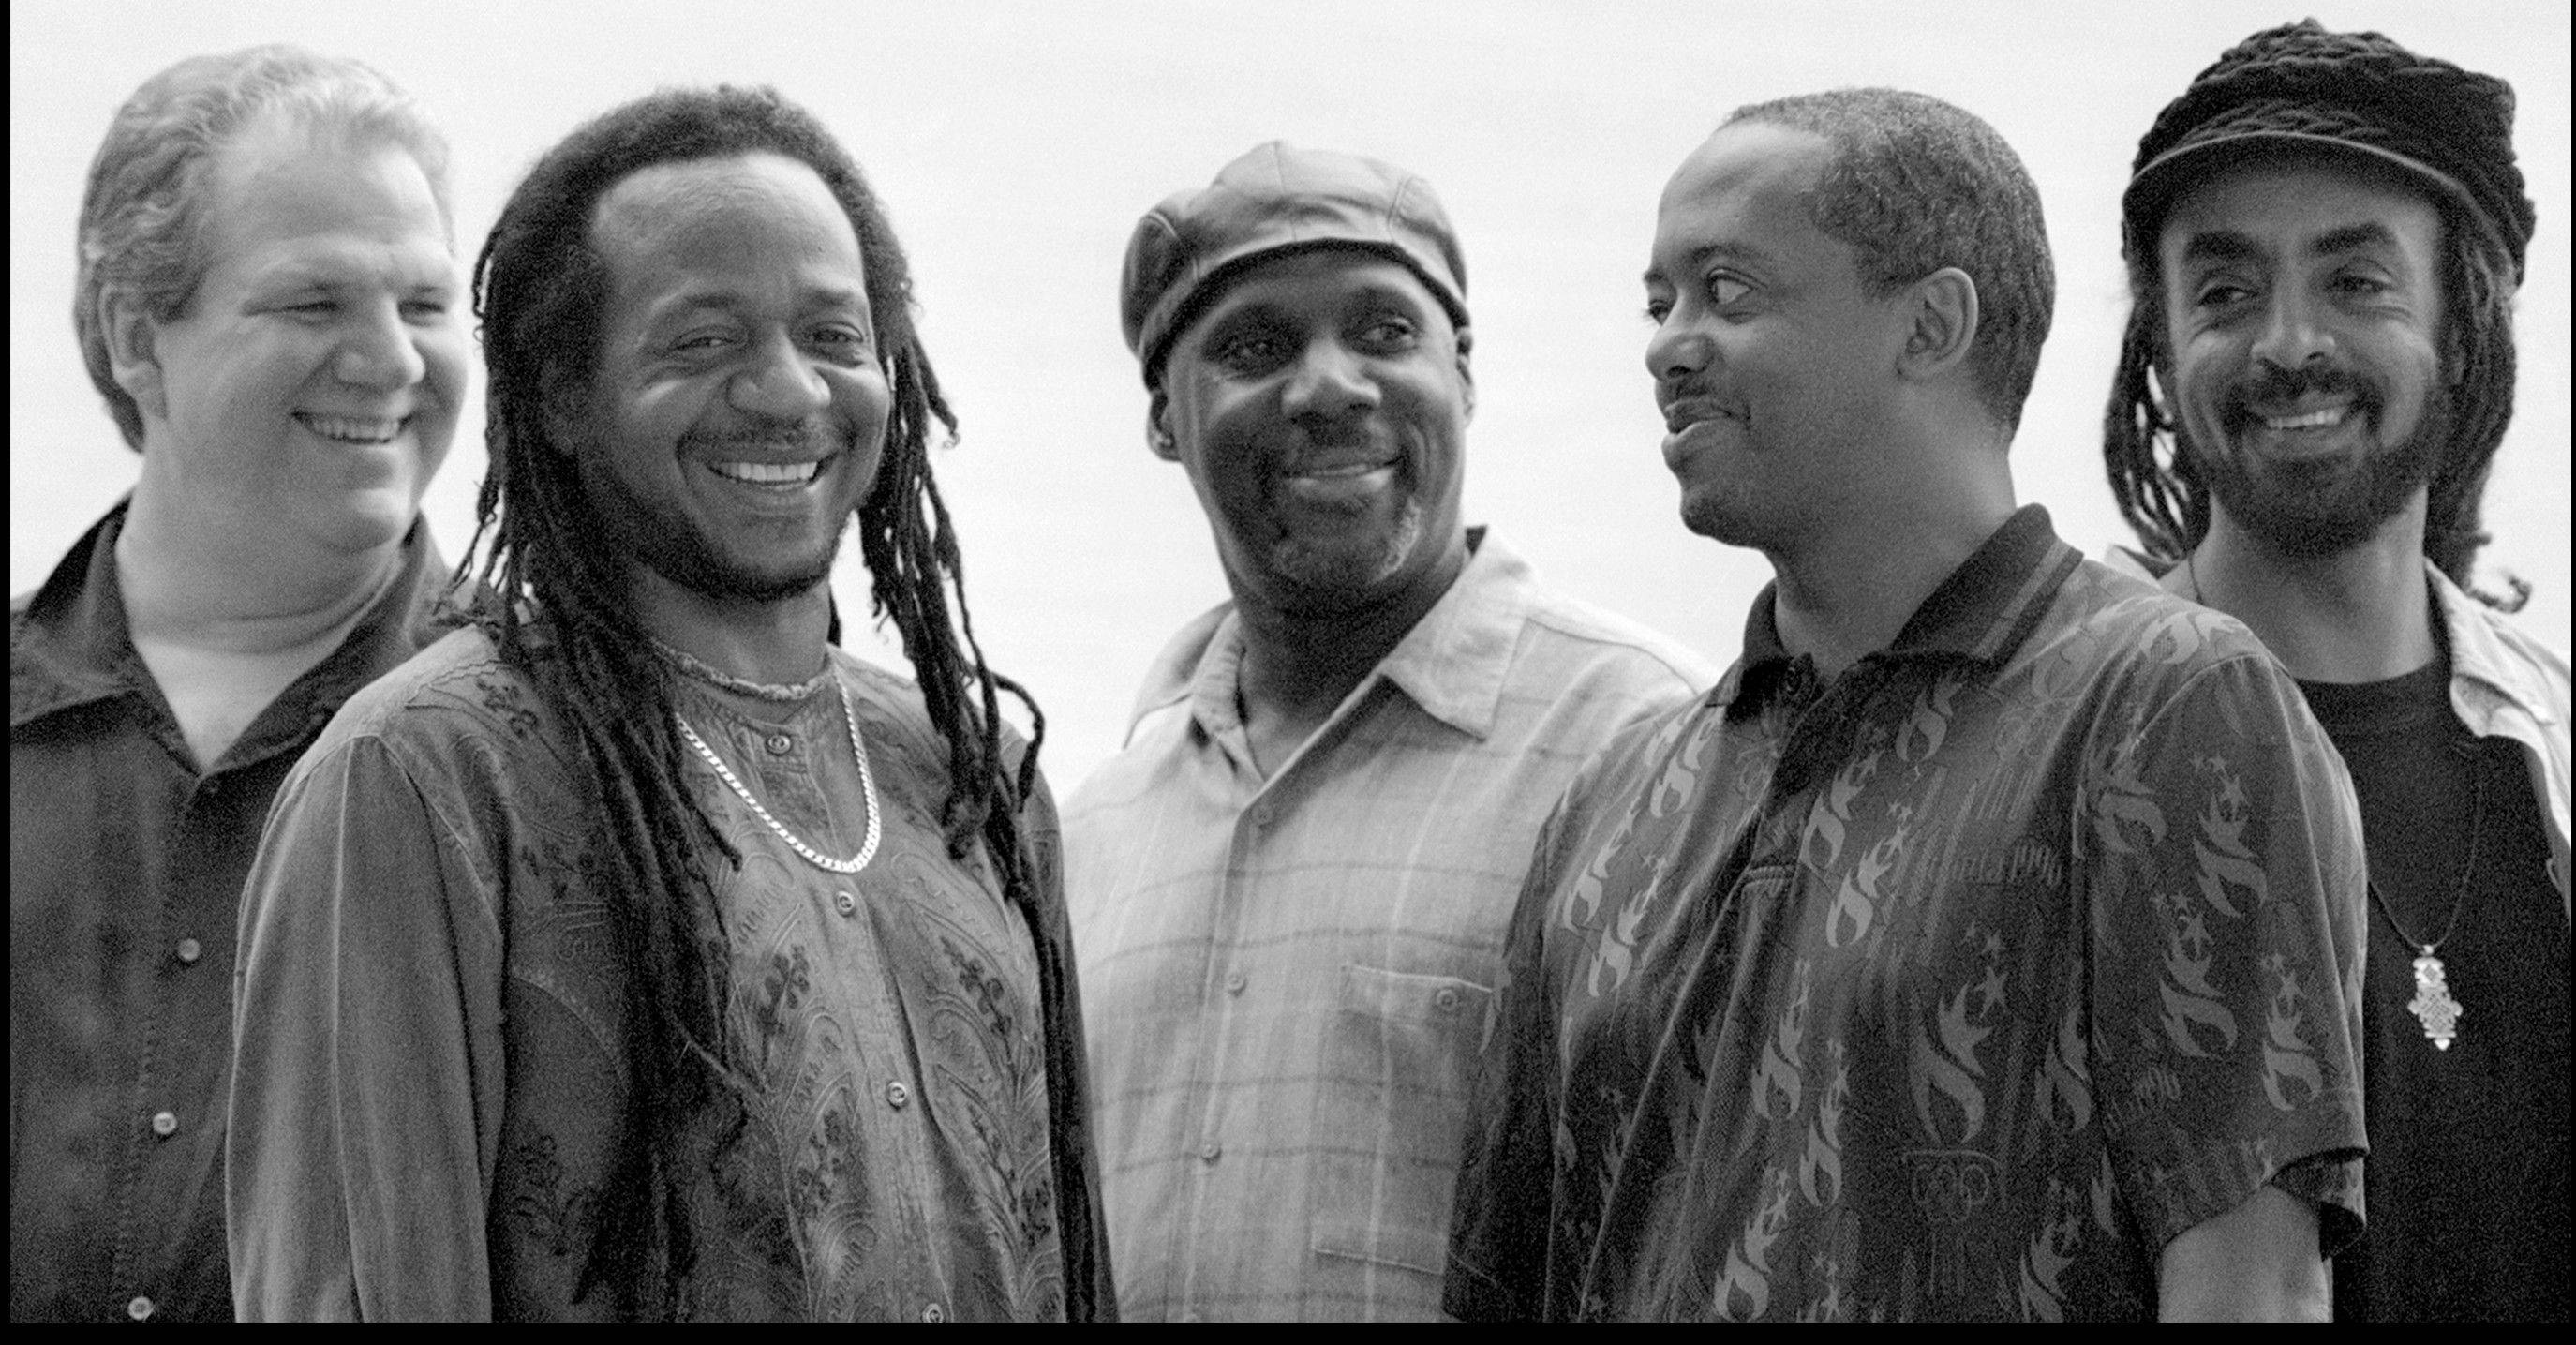 Gizzae, the Chicago Reggae band, will play its blend of Roots Reggae at the St. Charles Concert in the Park on Thursday, July 7.